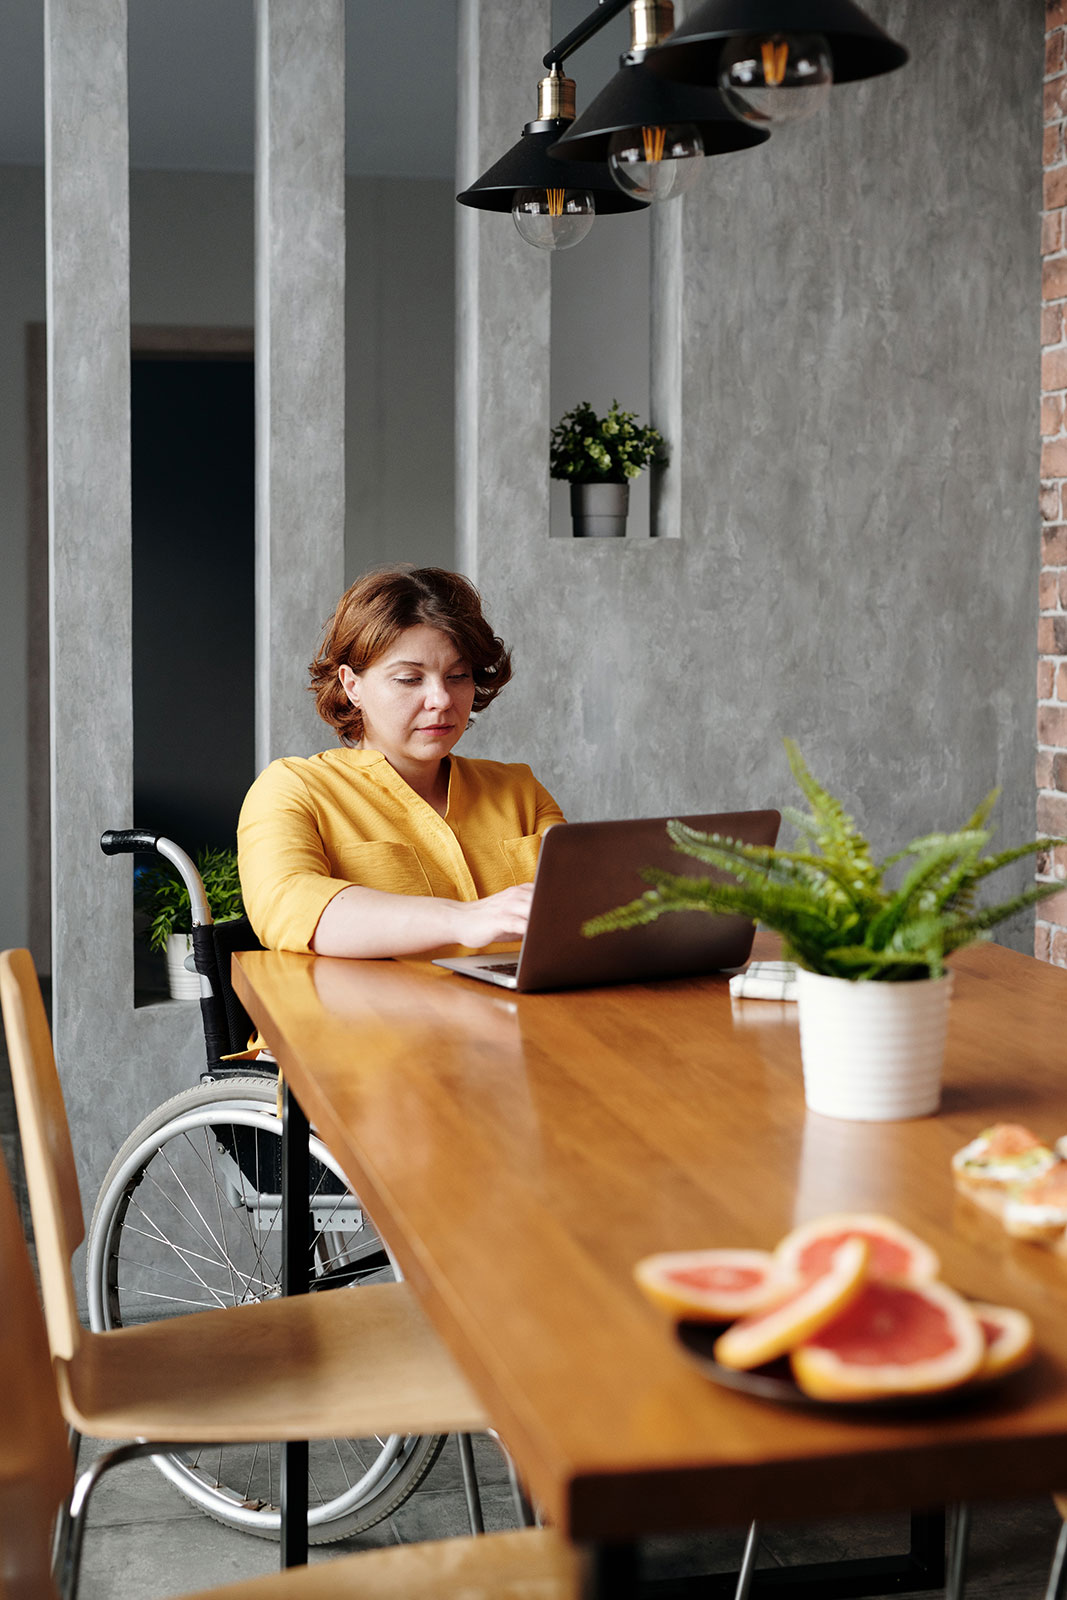 senior and disabled resources